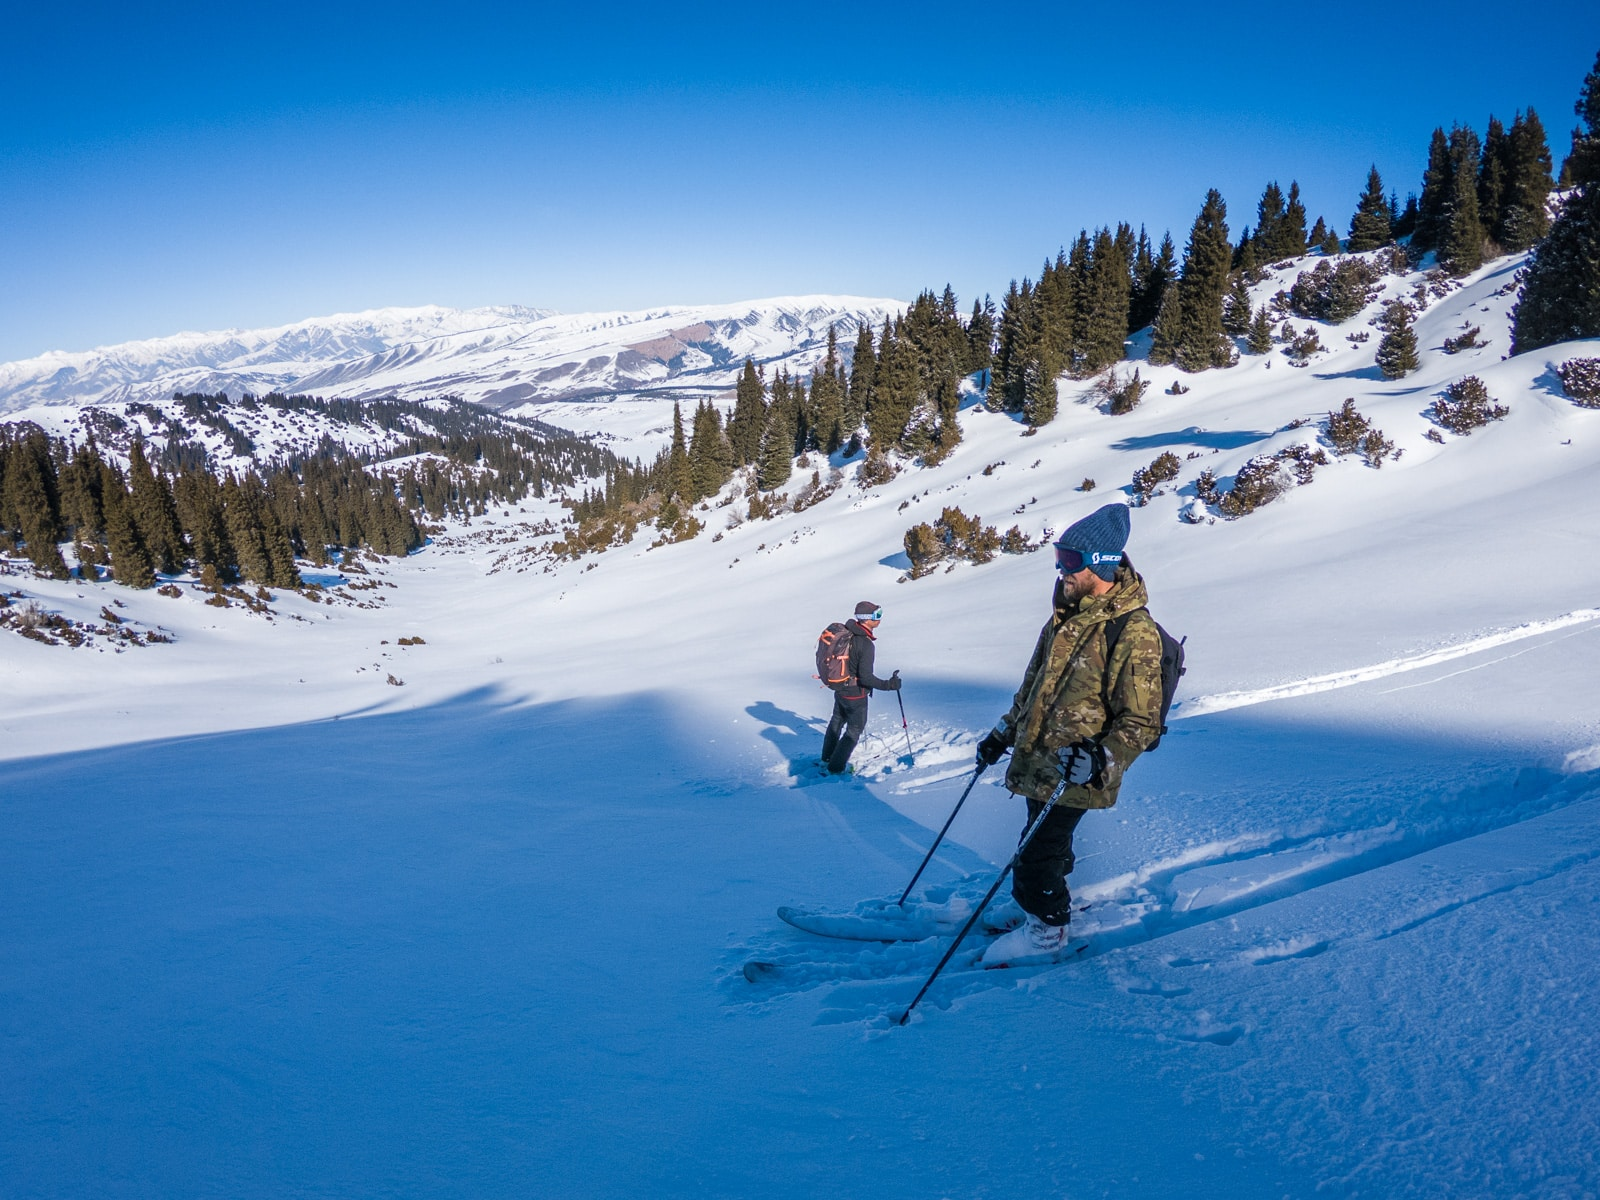 Backcountry skiing in Jyrgalan, Kyrgyzstan